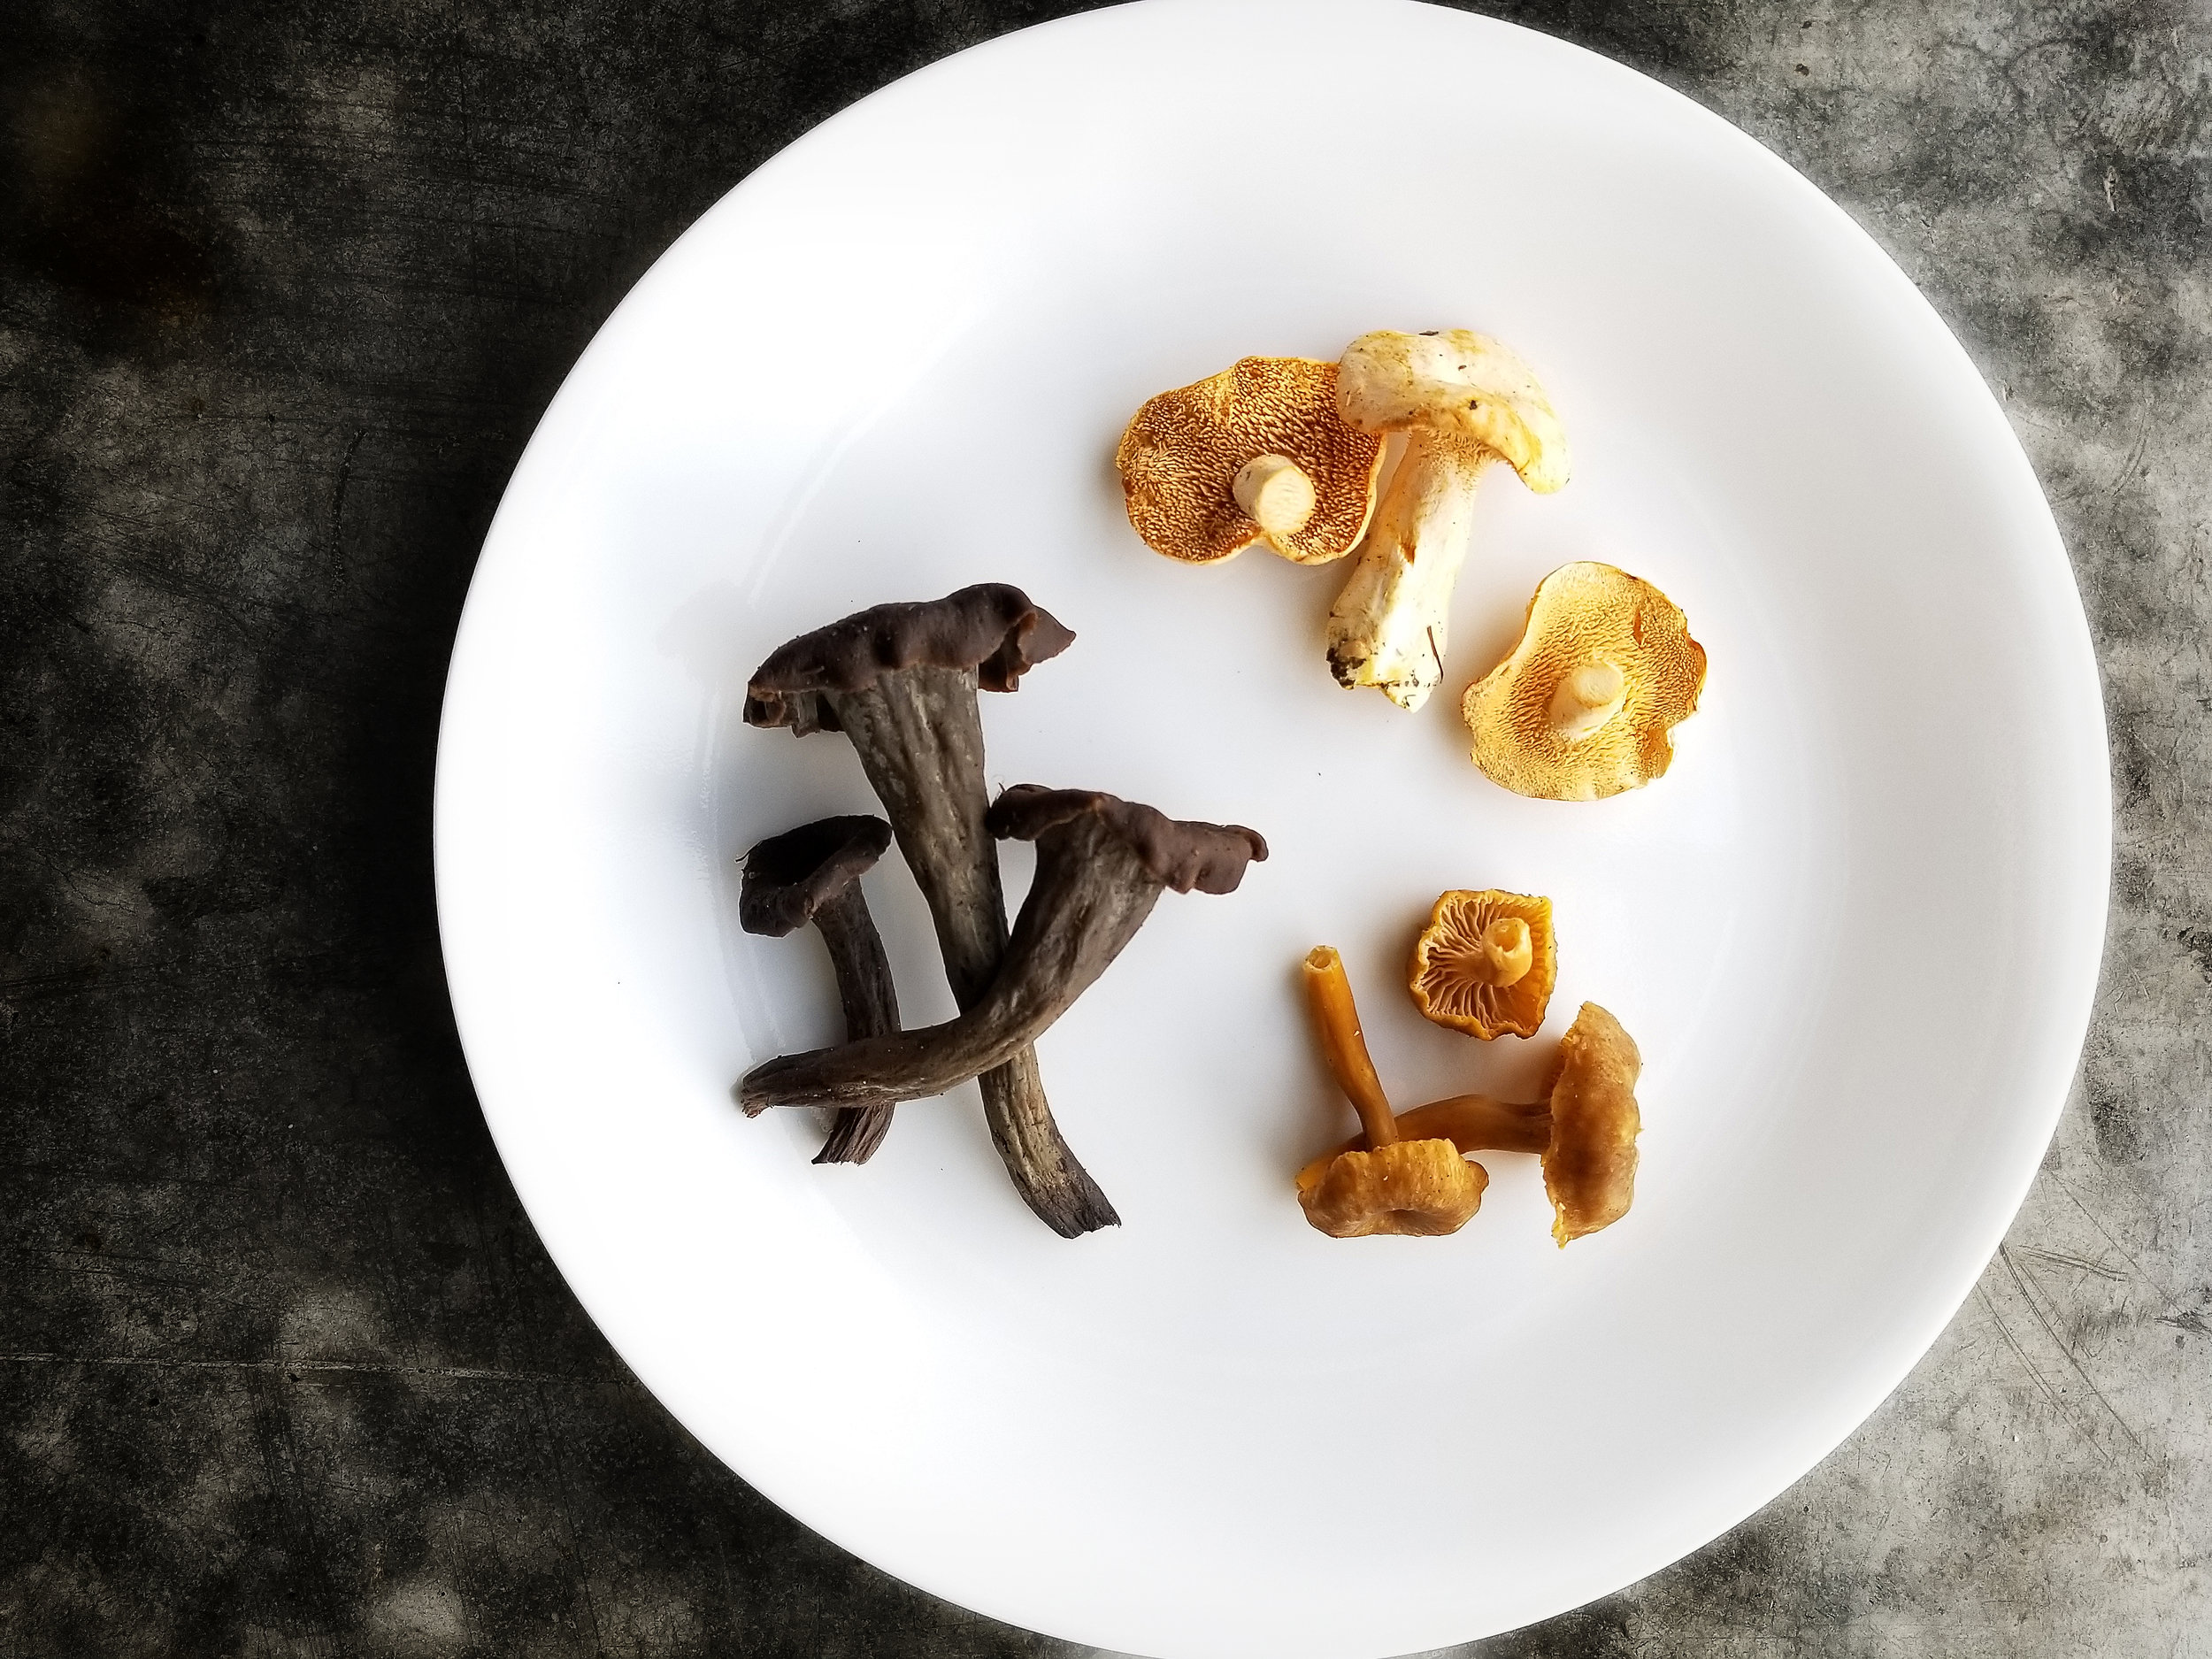 Time for the Winter Trio of Wild Mushrooms